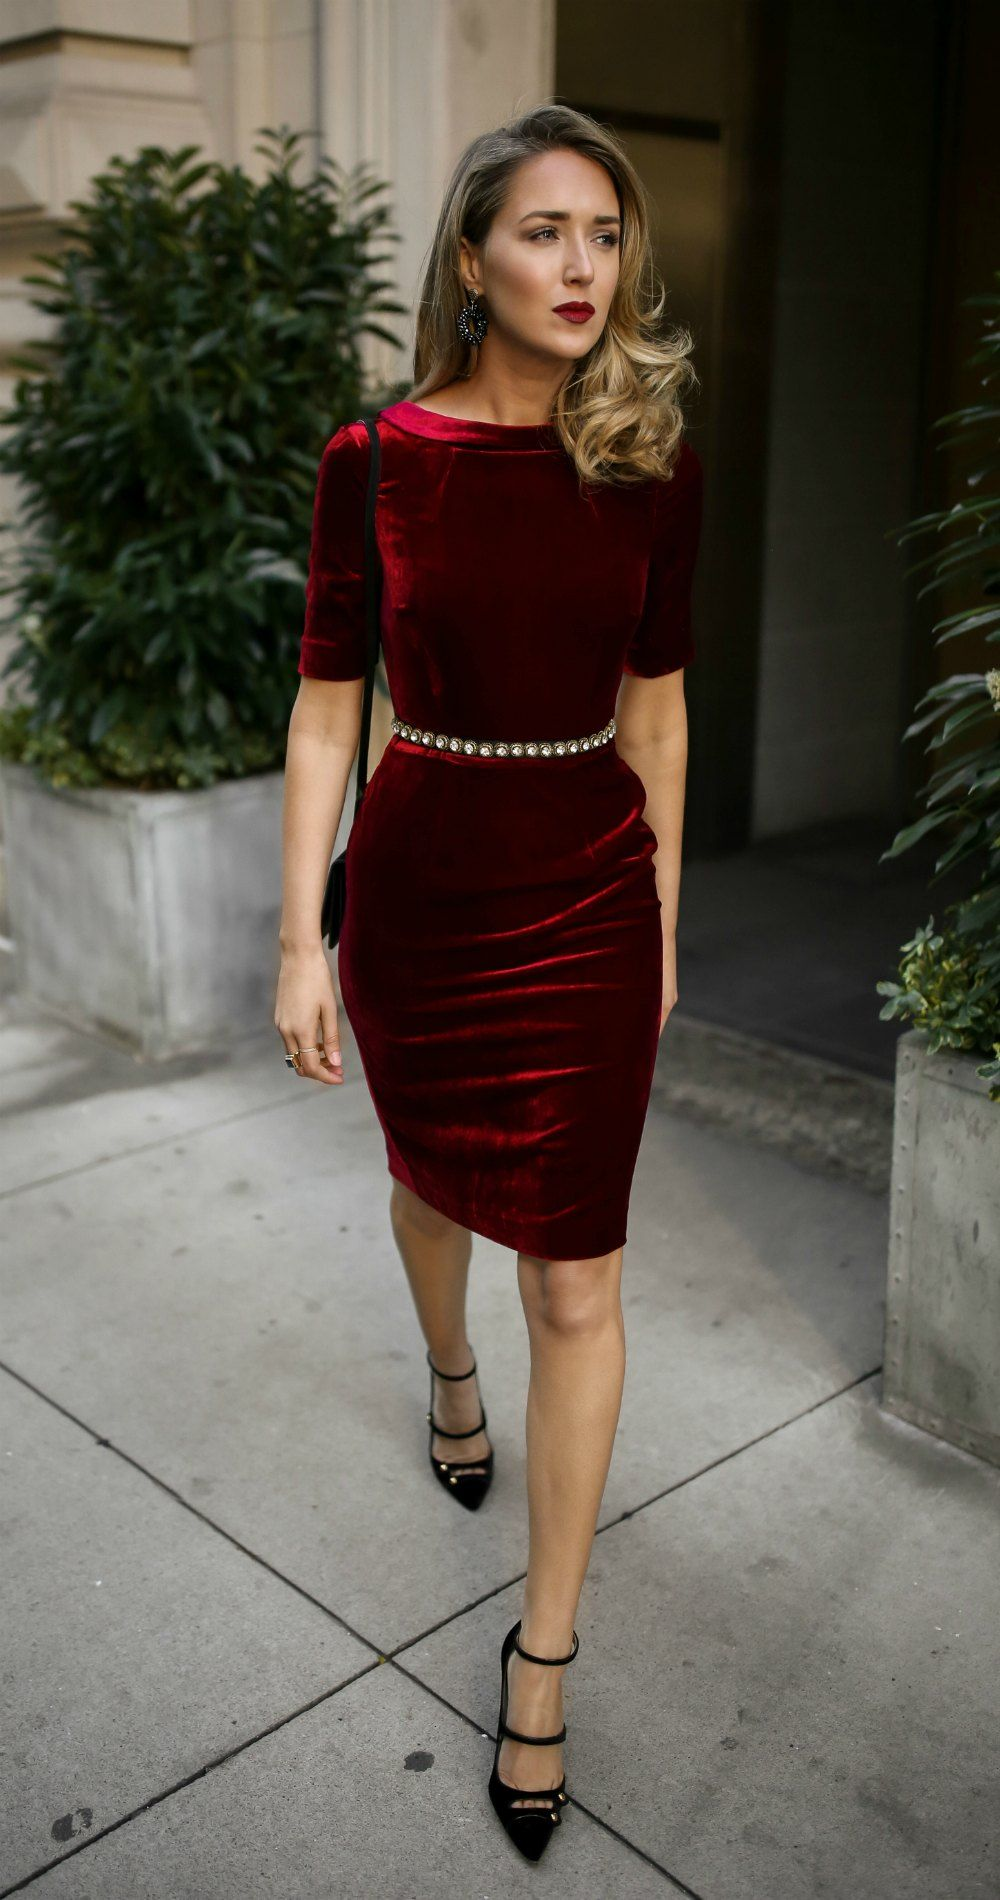 30 DRESSES IN 30 DAYS: Holiday Office Party, Cocktail Attire ...